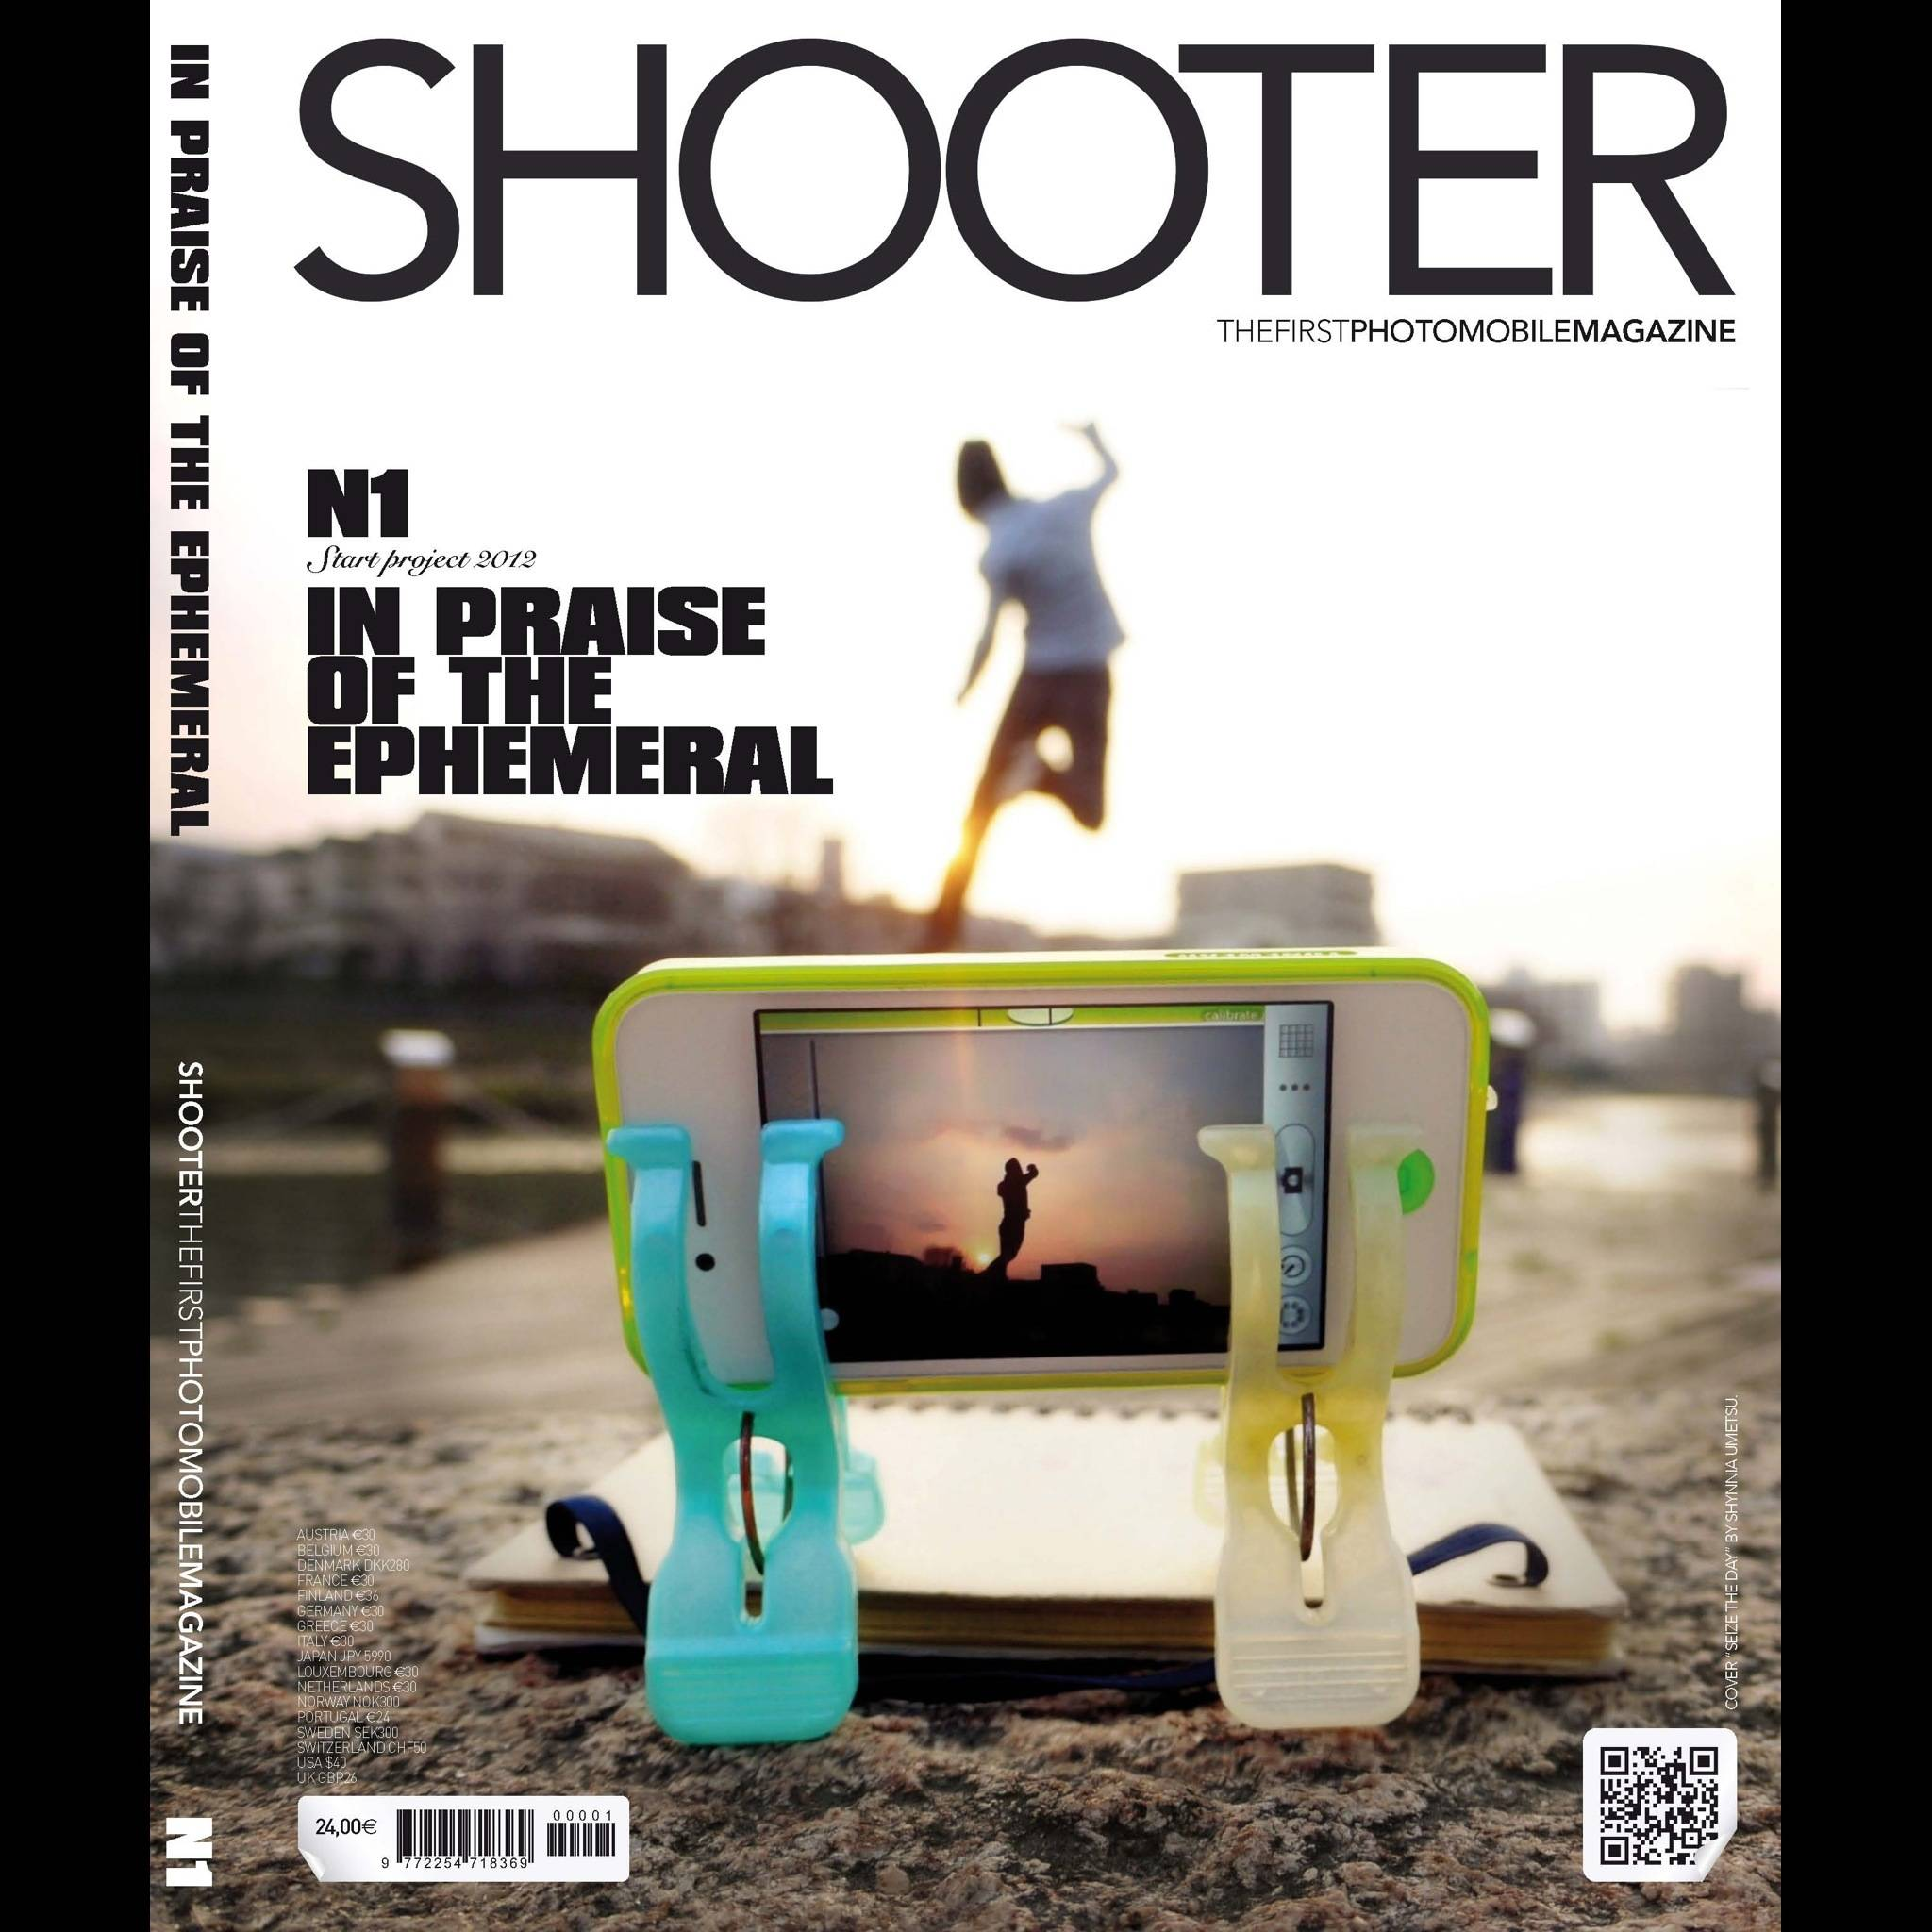 Shooter Magazine, The Magazine for Mobile Photographers